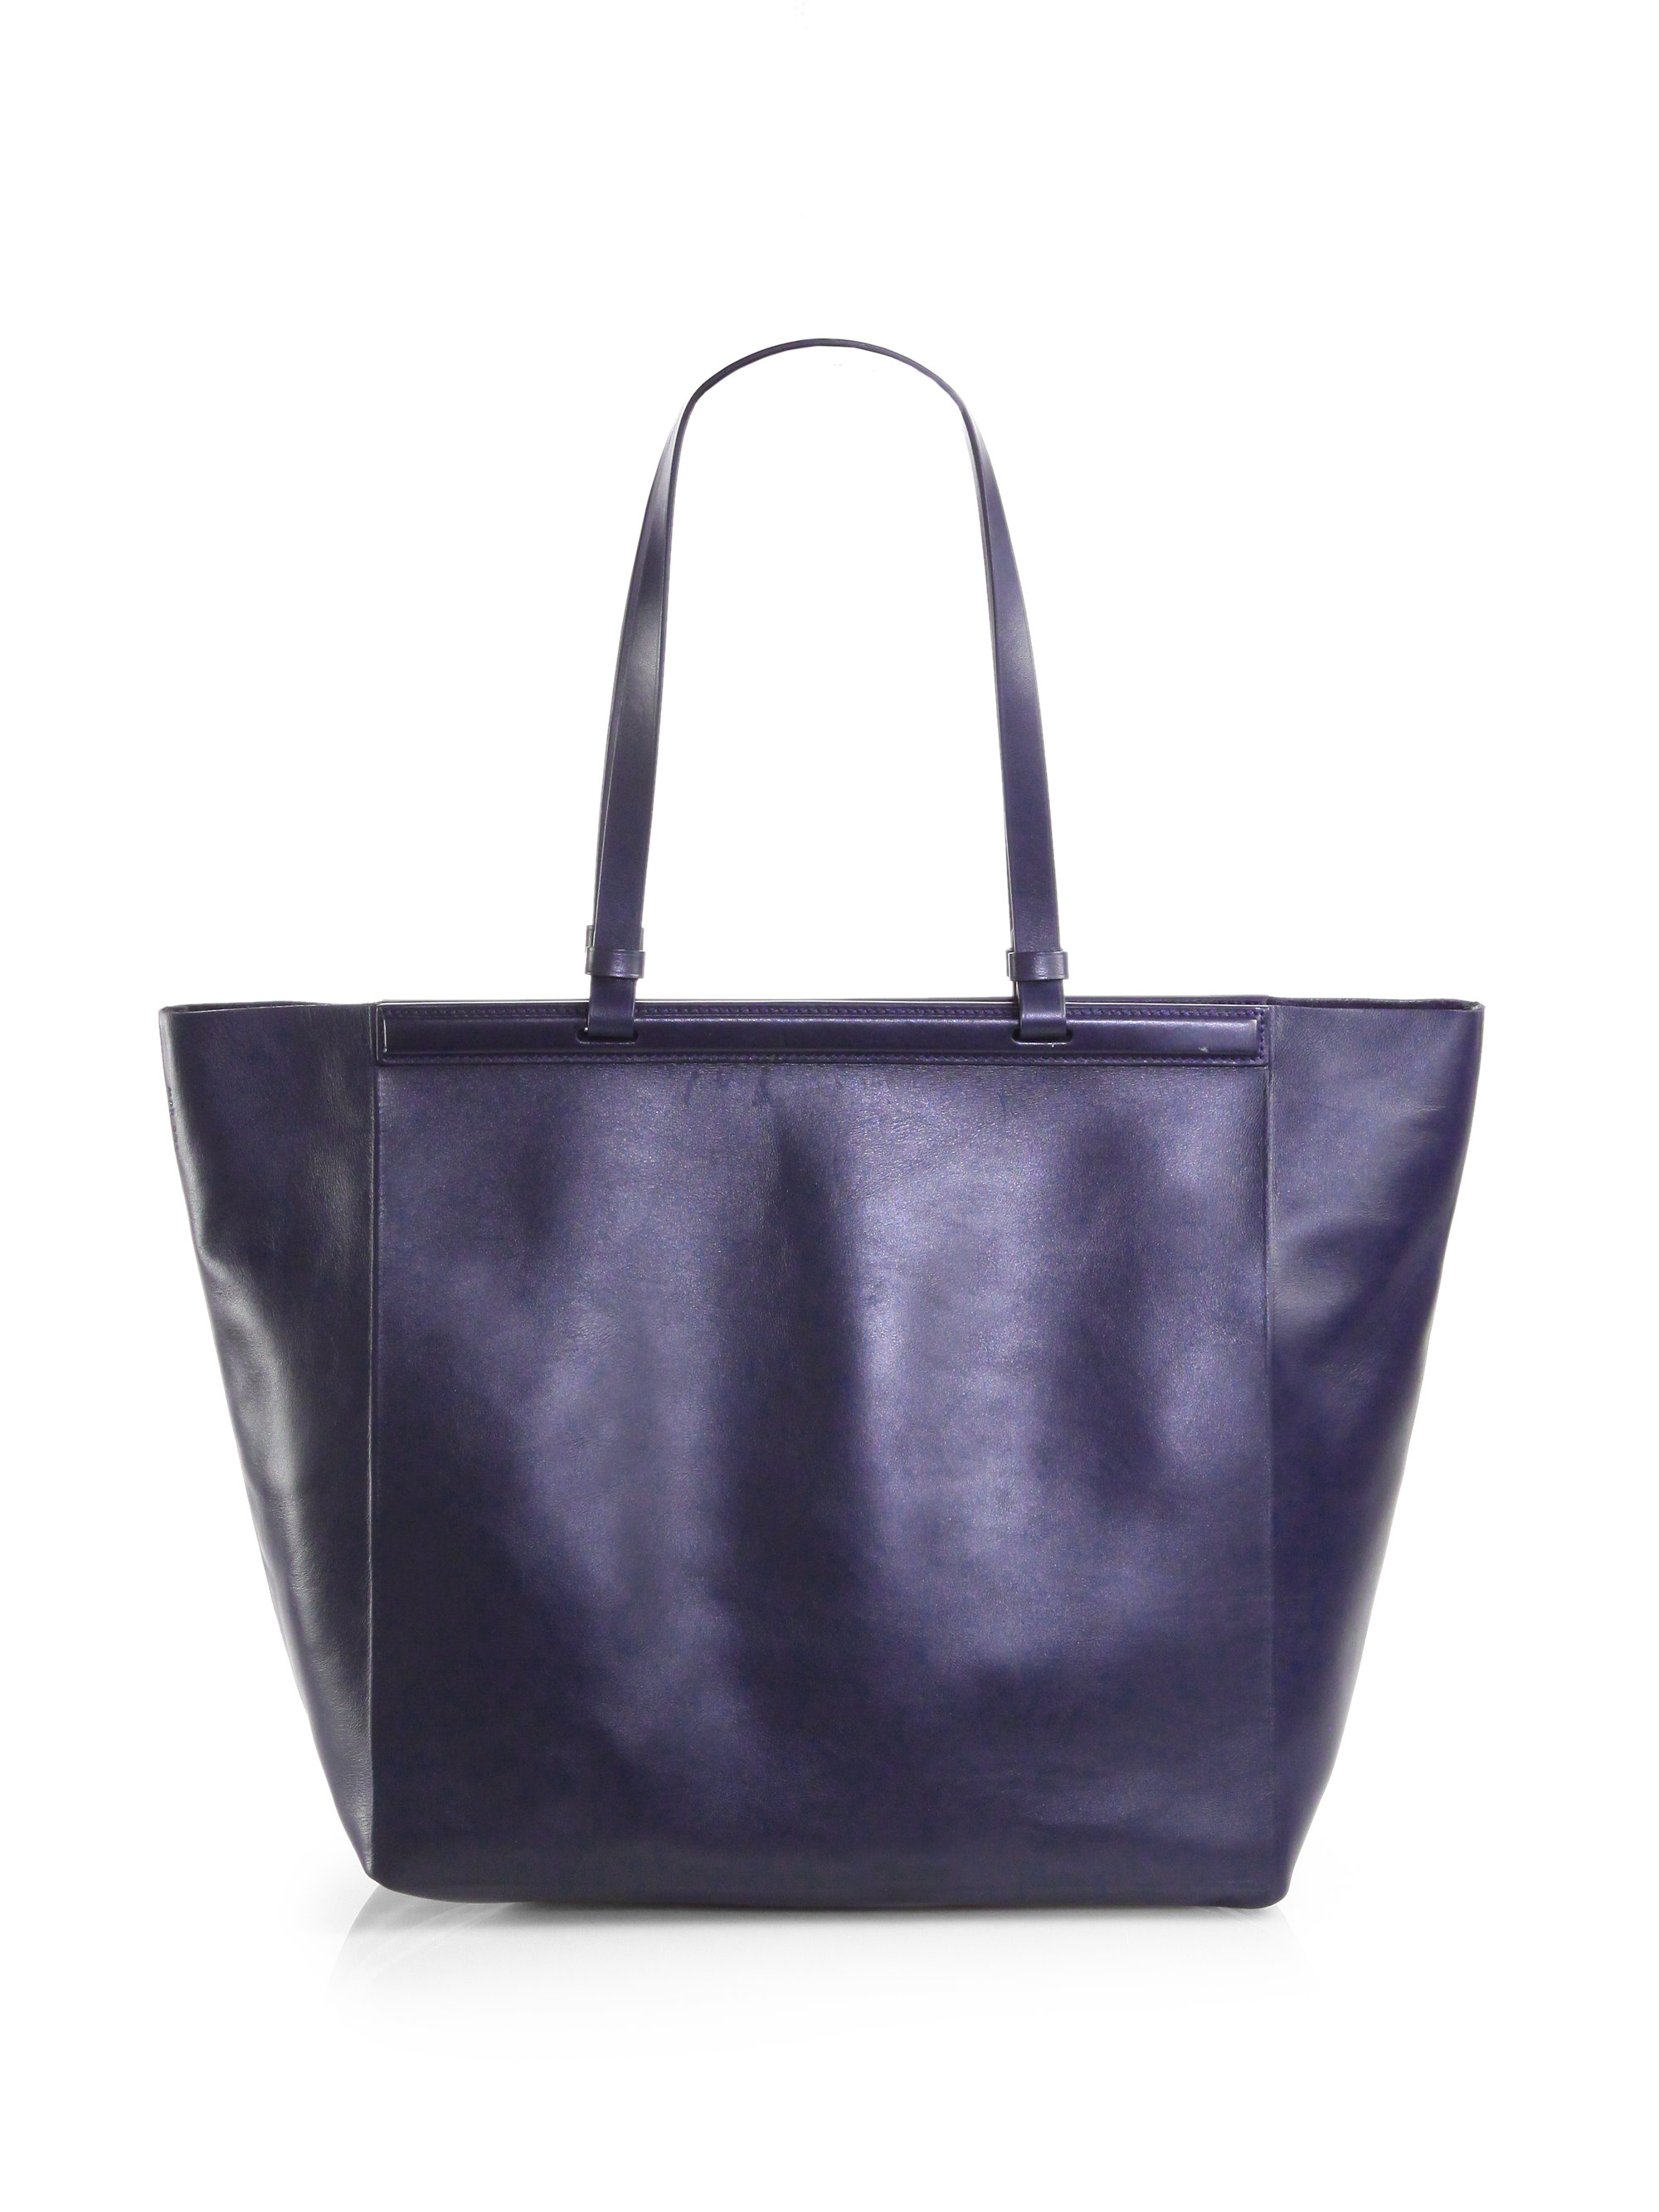 Find great deals on eBay for large shopper tote bag. Shop with confidence.